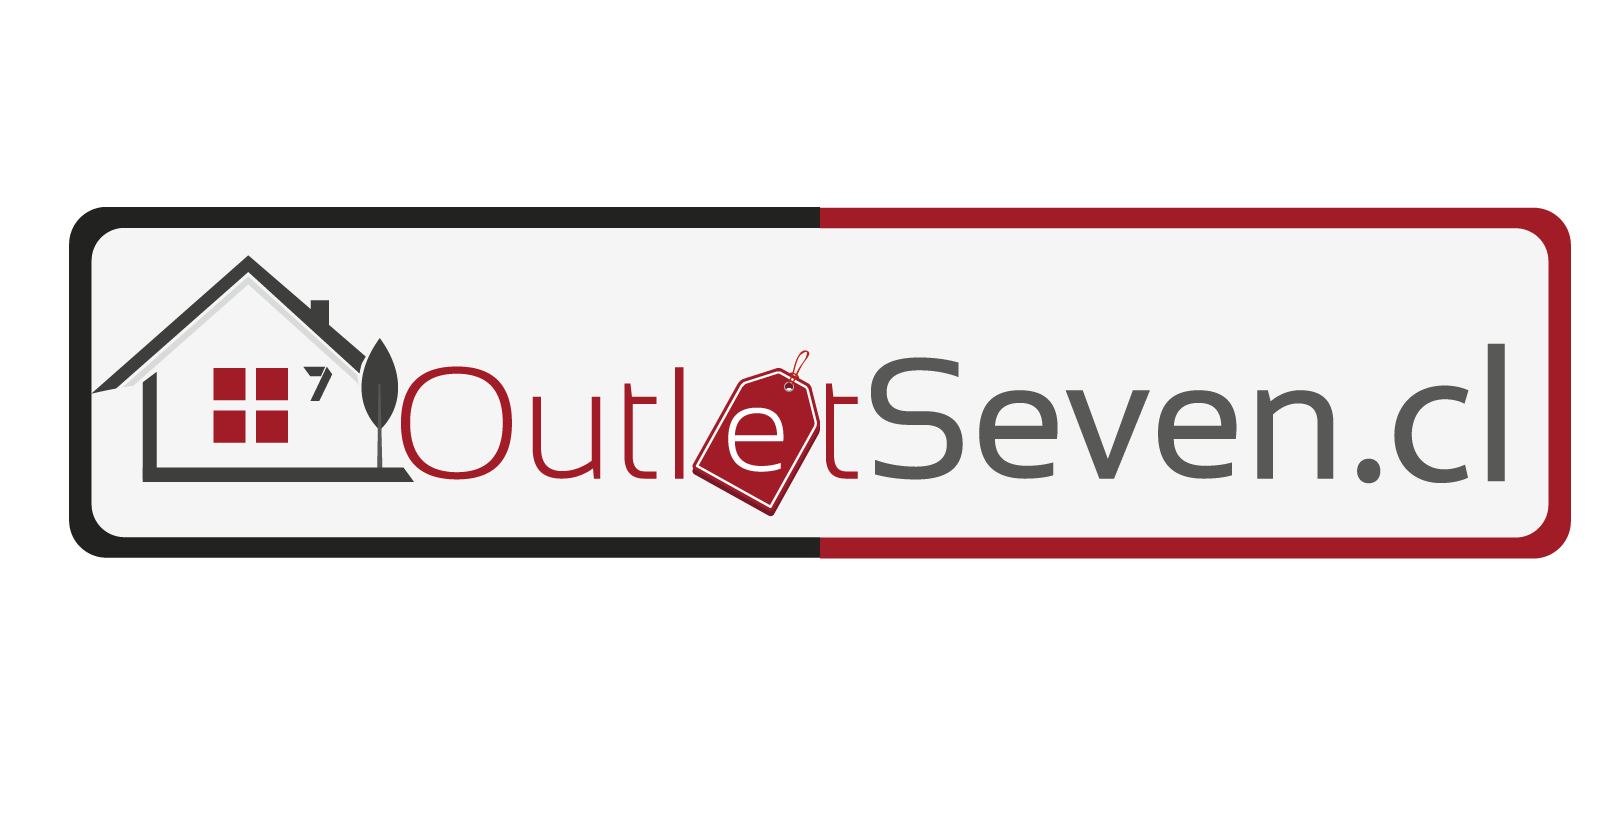 Outletseven